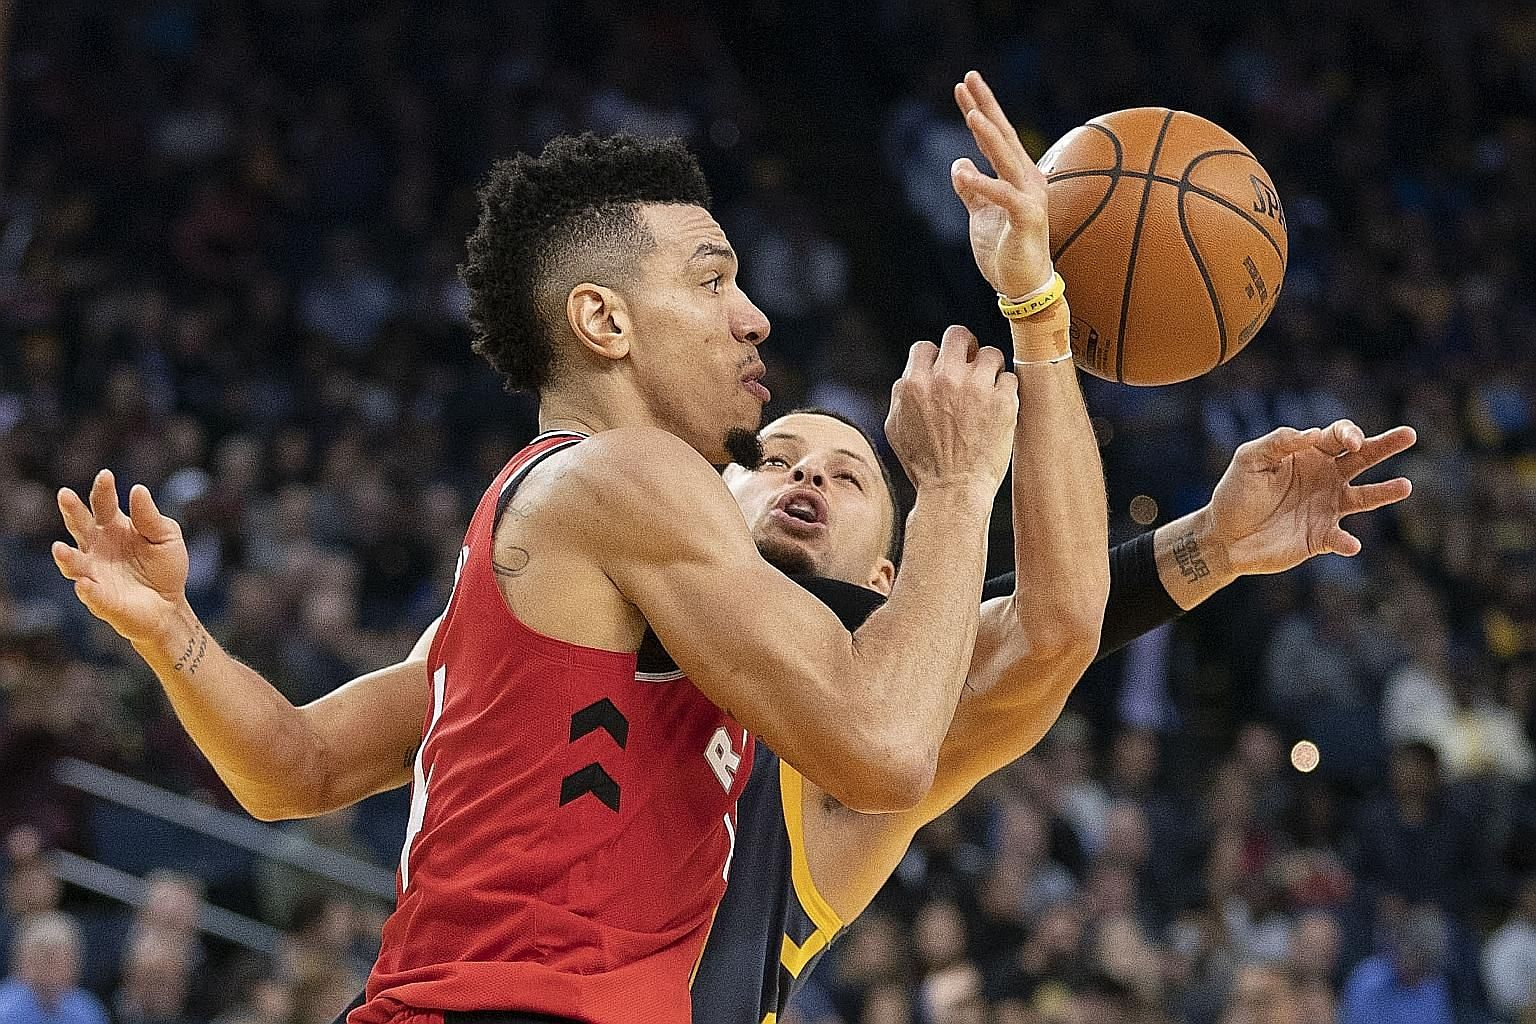 Toronto's Danny Green outmuscling Golden State's Stephen Curry for the ball during the Raptors' 113-93 win at the Oracle Arena. It was their first win in 14 years at the Warriors' home.